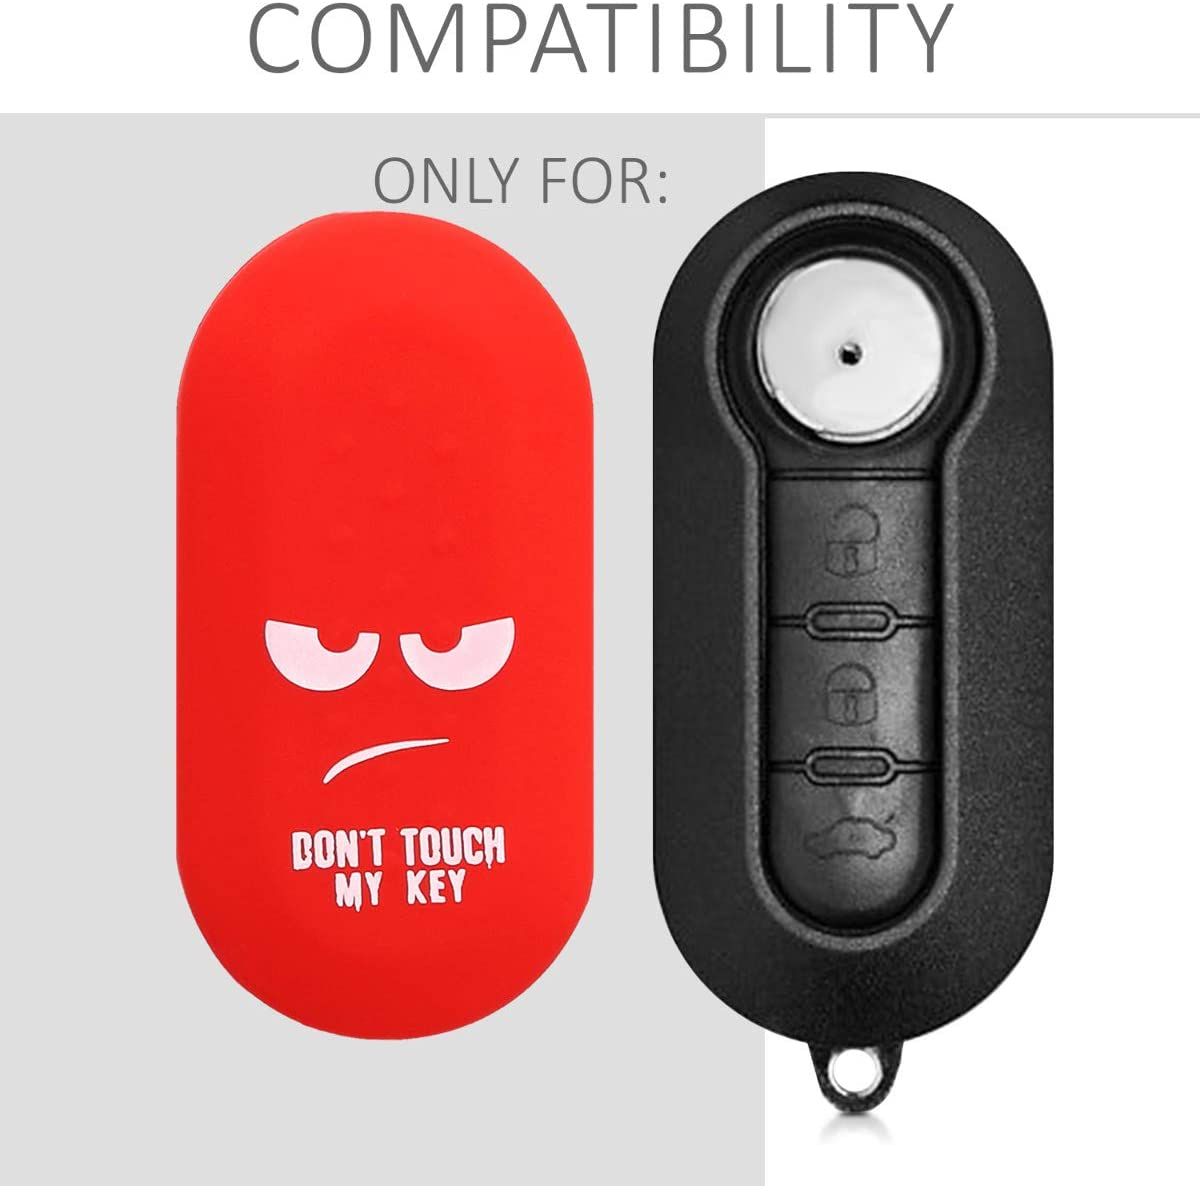 kwmobile Car Key Cover Compatible with Fiat Lancia 3 Button Car Flip Key Silicone Protective Key Fob Cover Dont Touch My Key White//Red